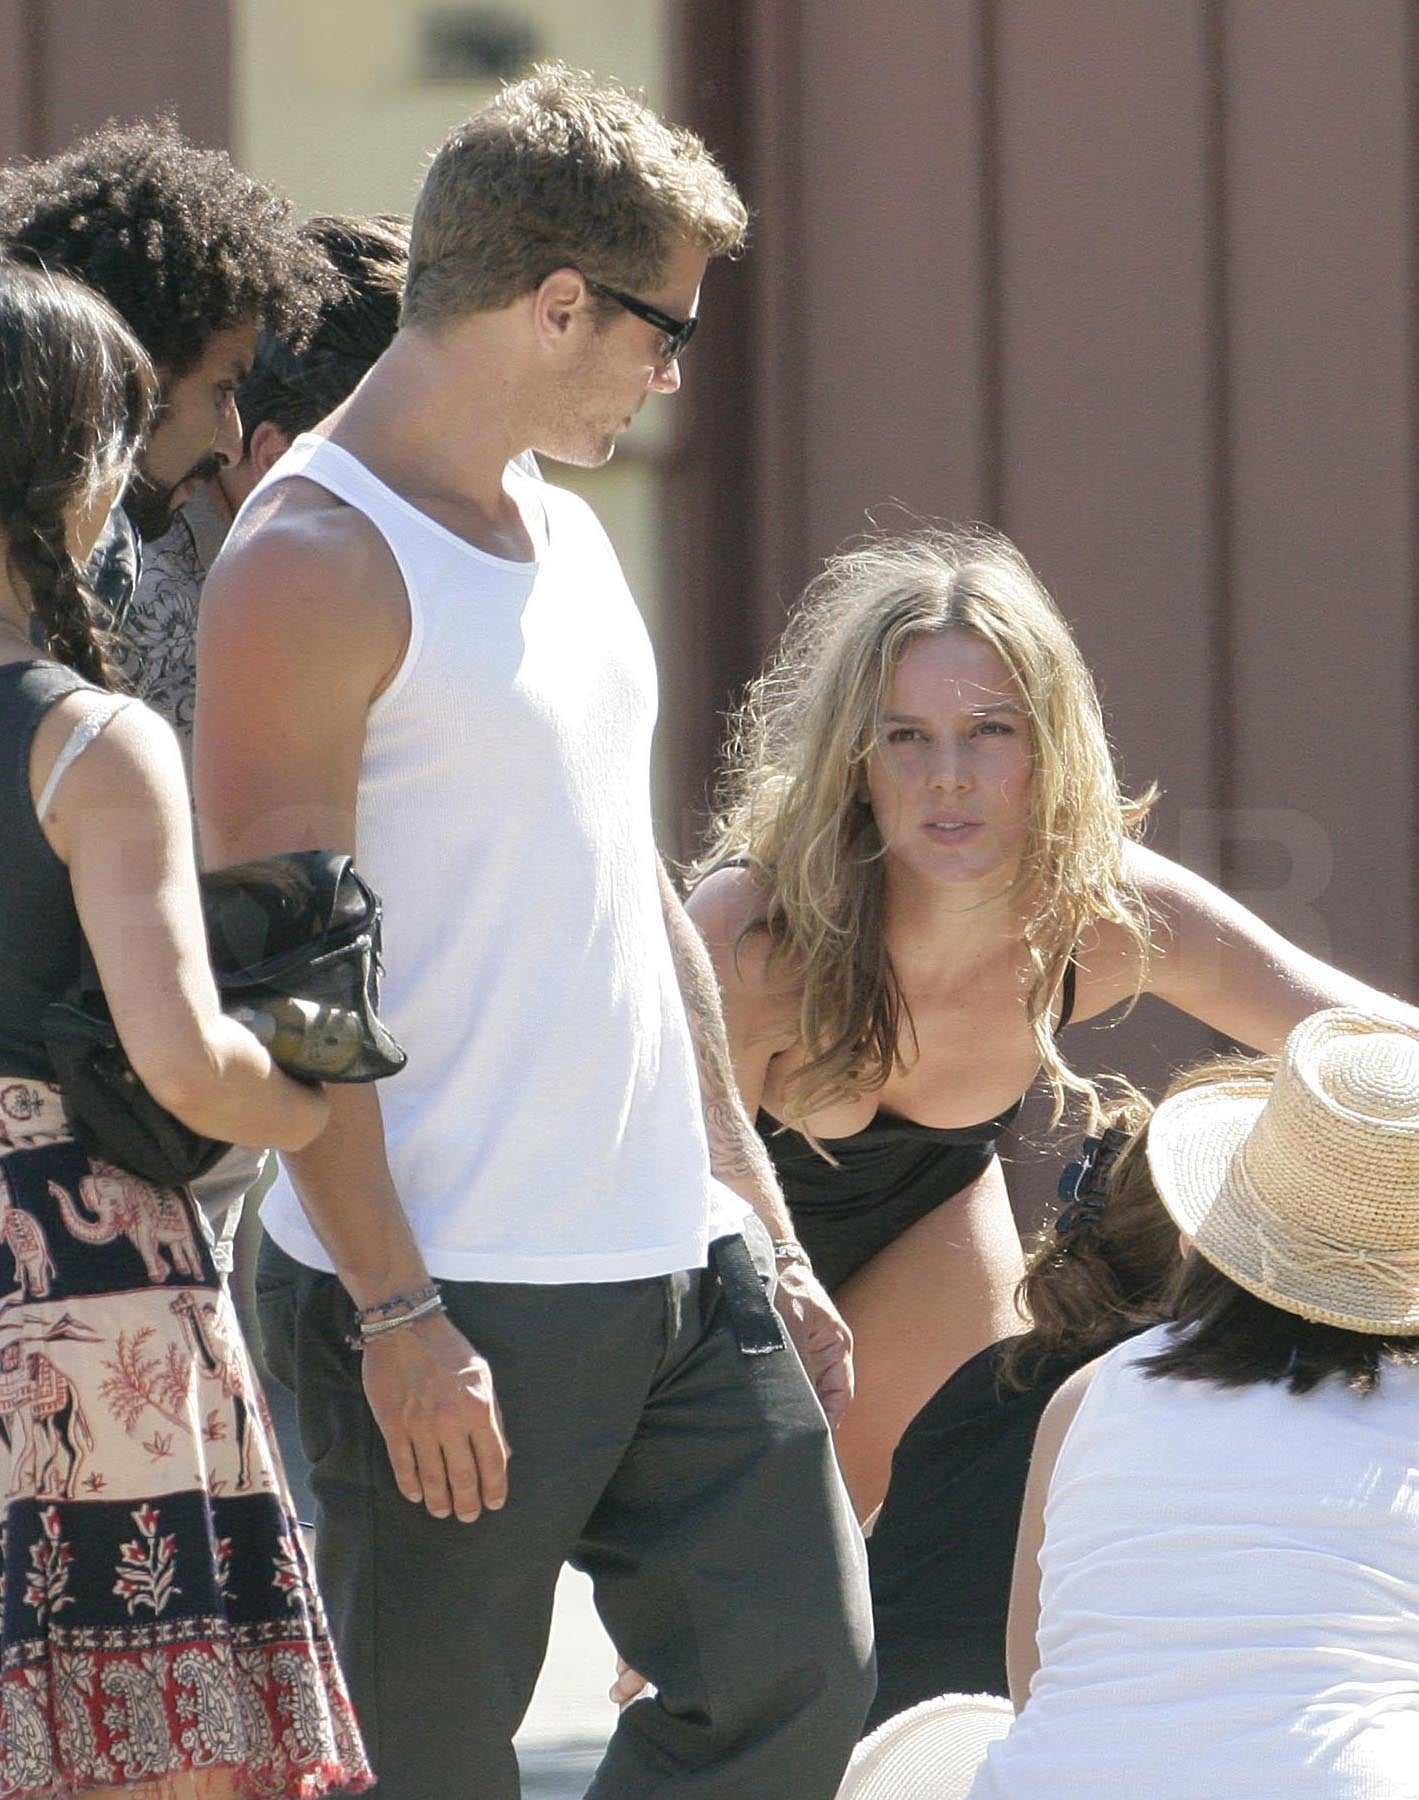 Shirtless Photos of Ryan Phillippe Kissing Abbie Cornish ... Abbie Cornish Ryan Phillippe